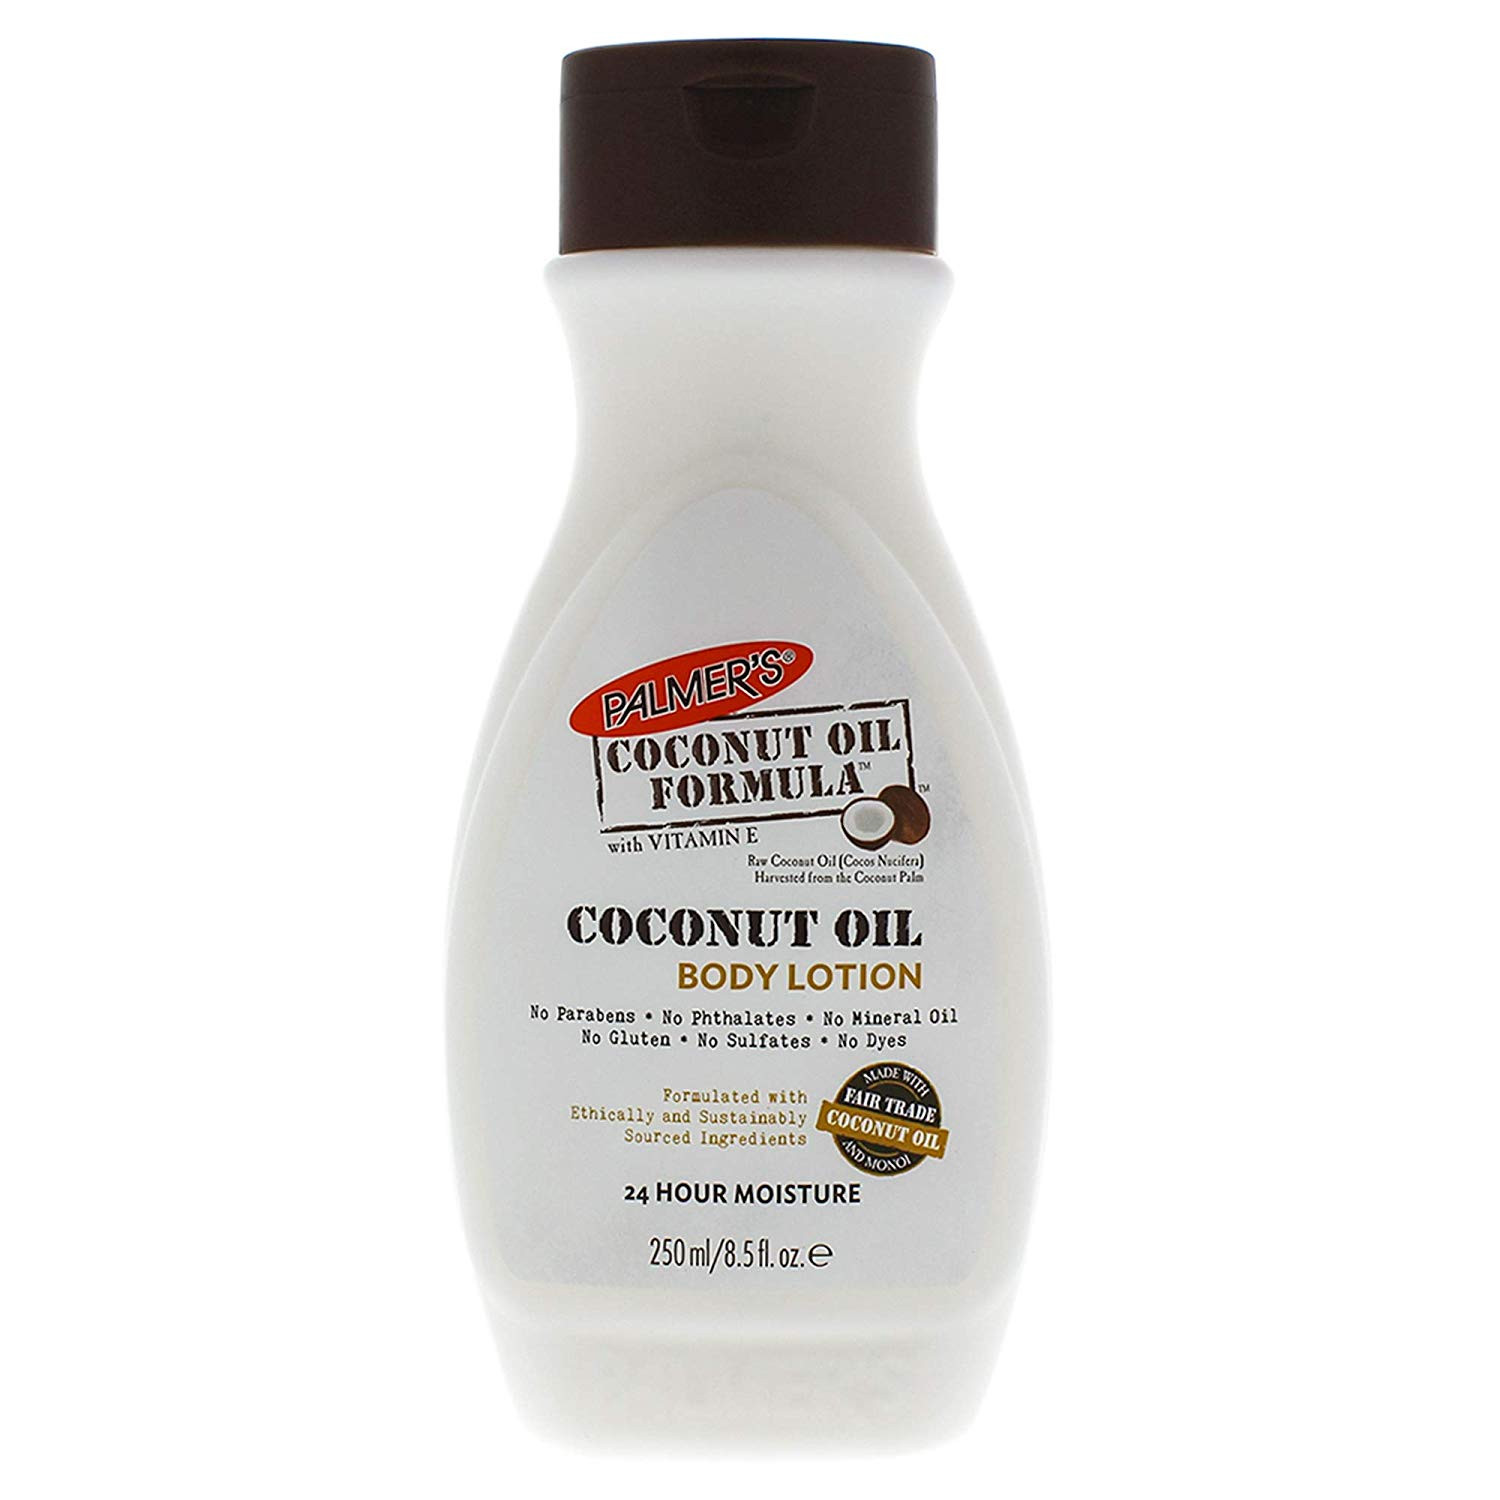 Palmers Coconut Oil Formula With Vitamin E Body Lotion 250ml